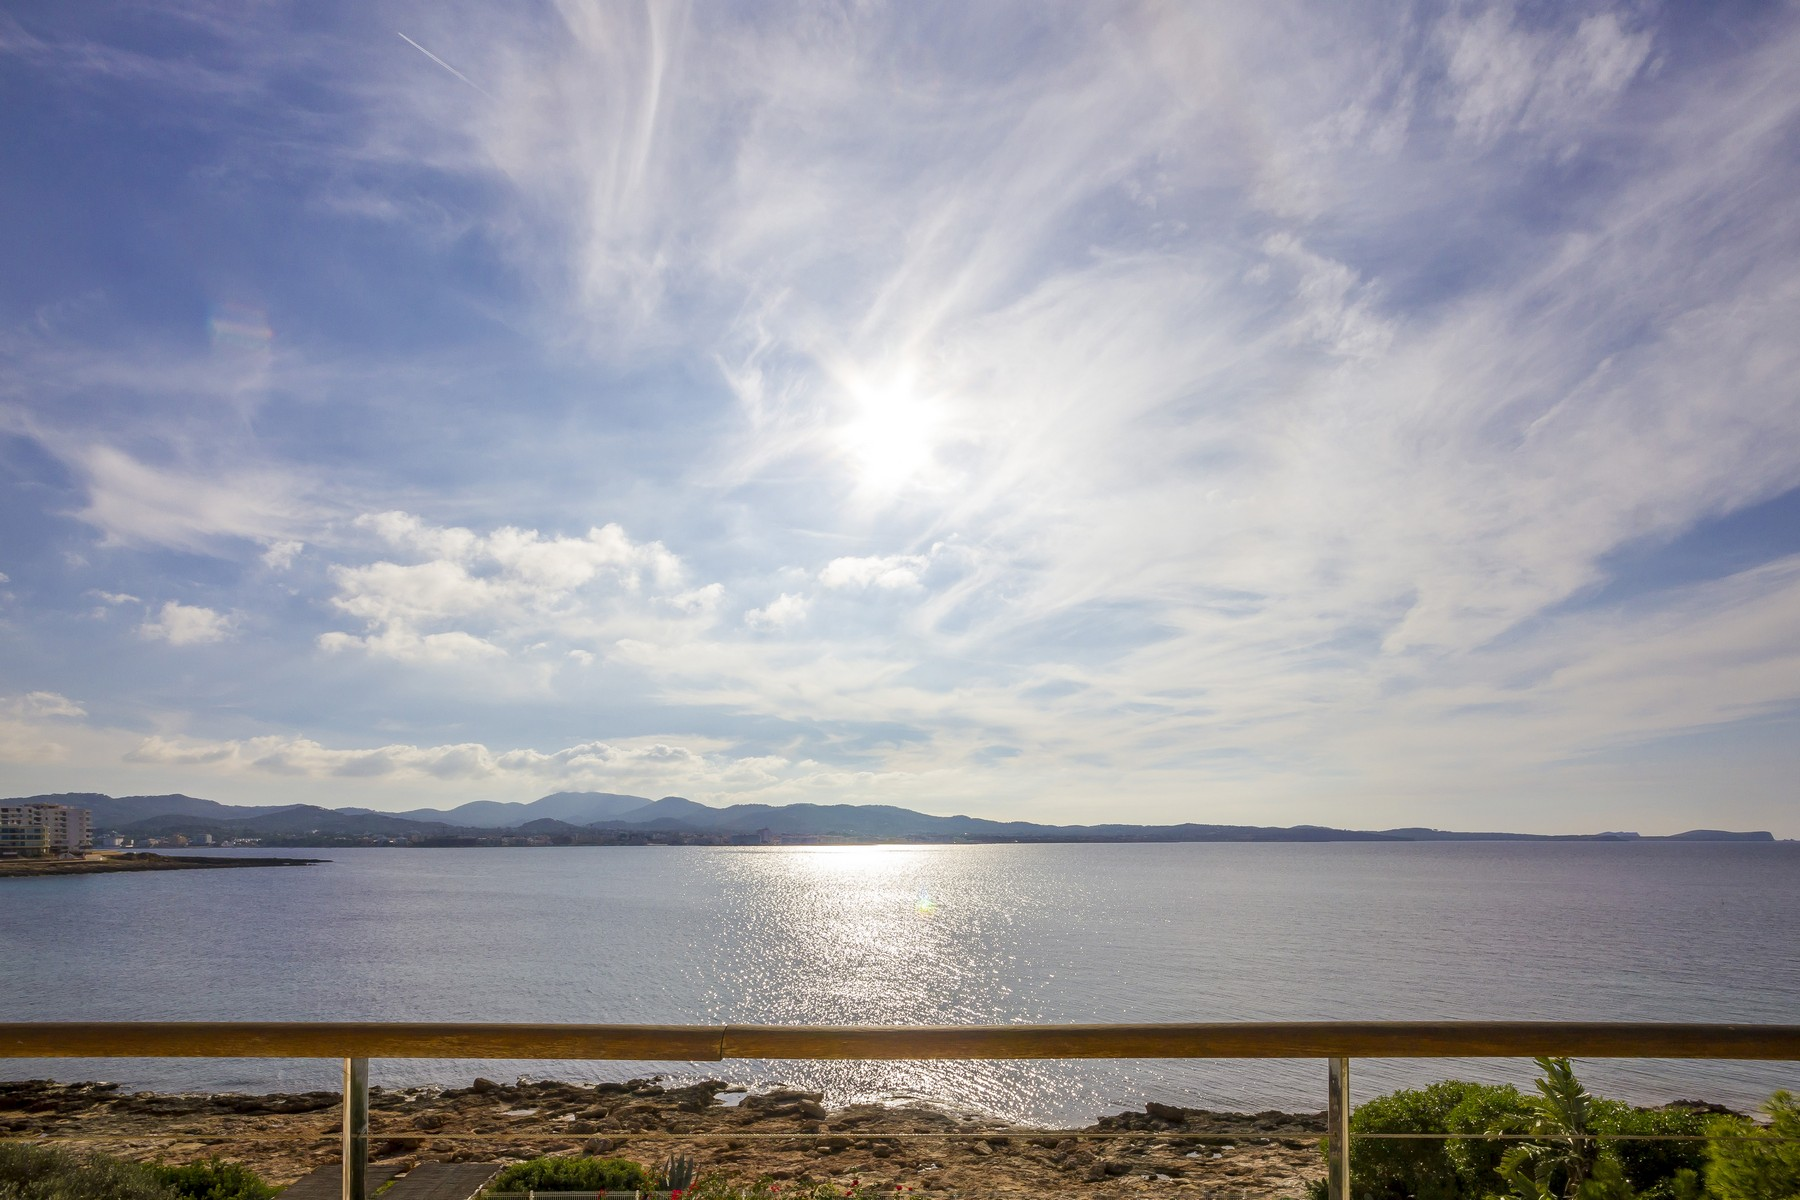 Apartment for Sale at Frontline Attic with Sunset Sea Views San Antonio Abad, Mallorca, 07830 Spain